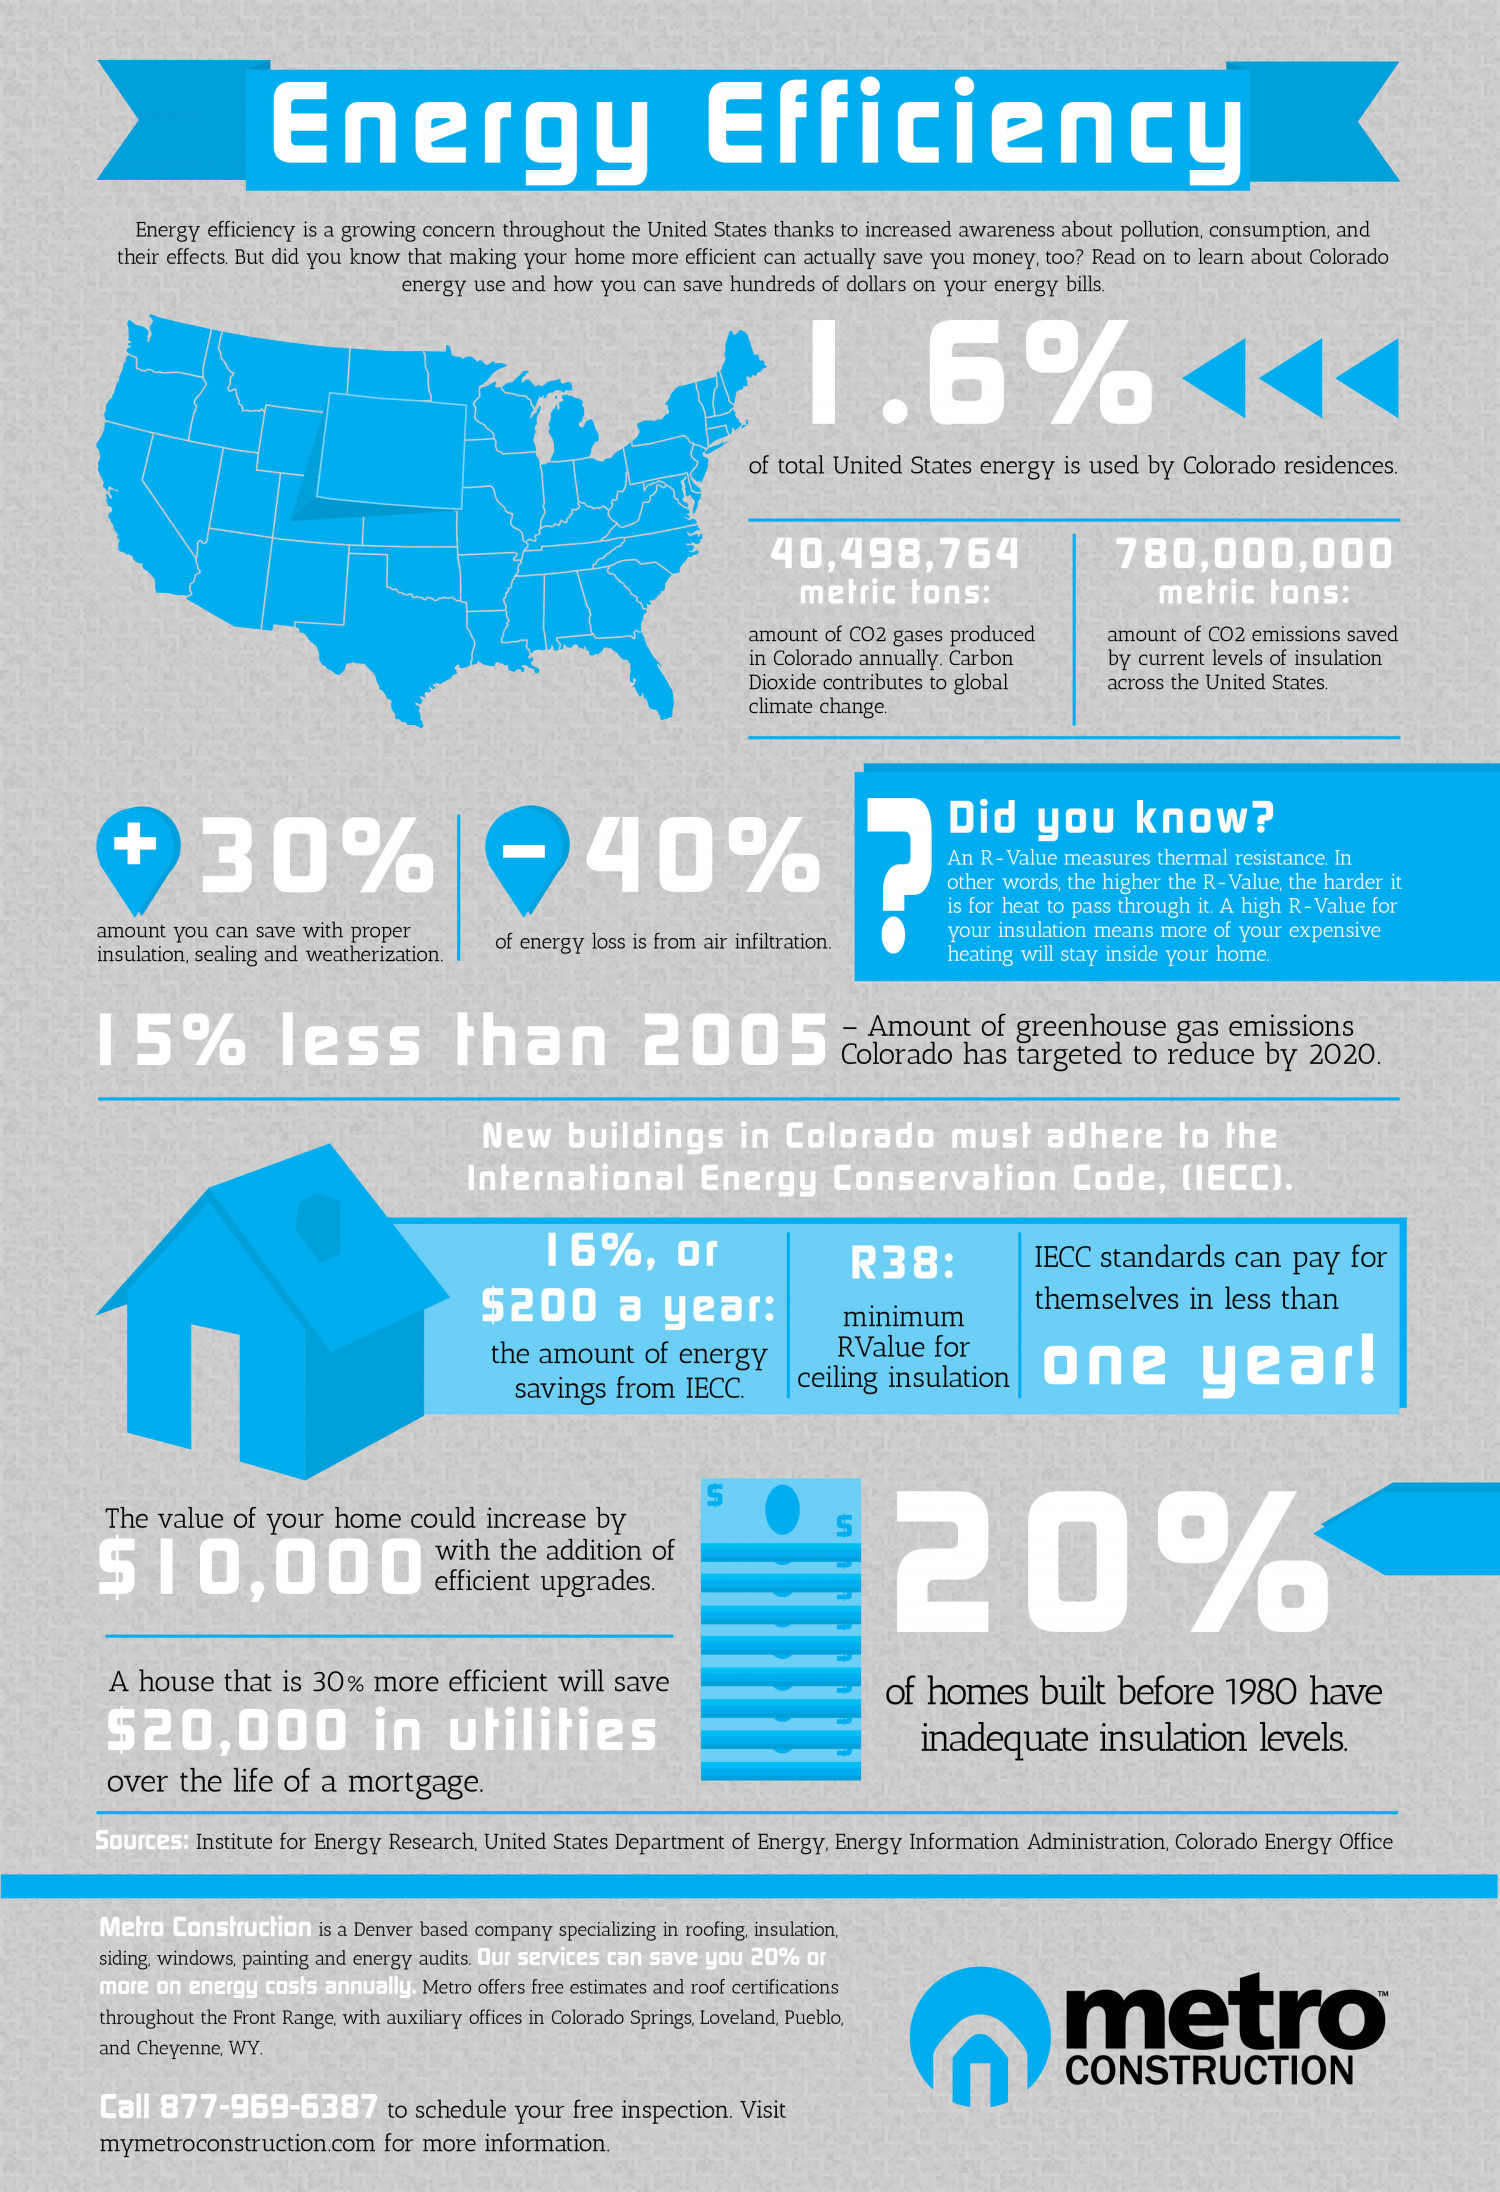 Energy Efficiency in Colorado Infographic